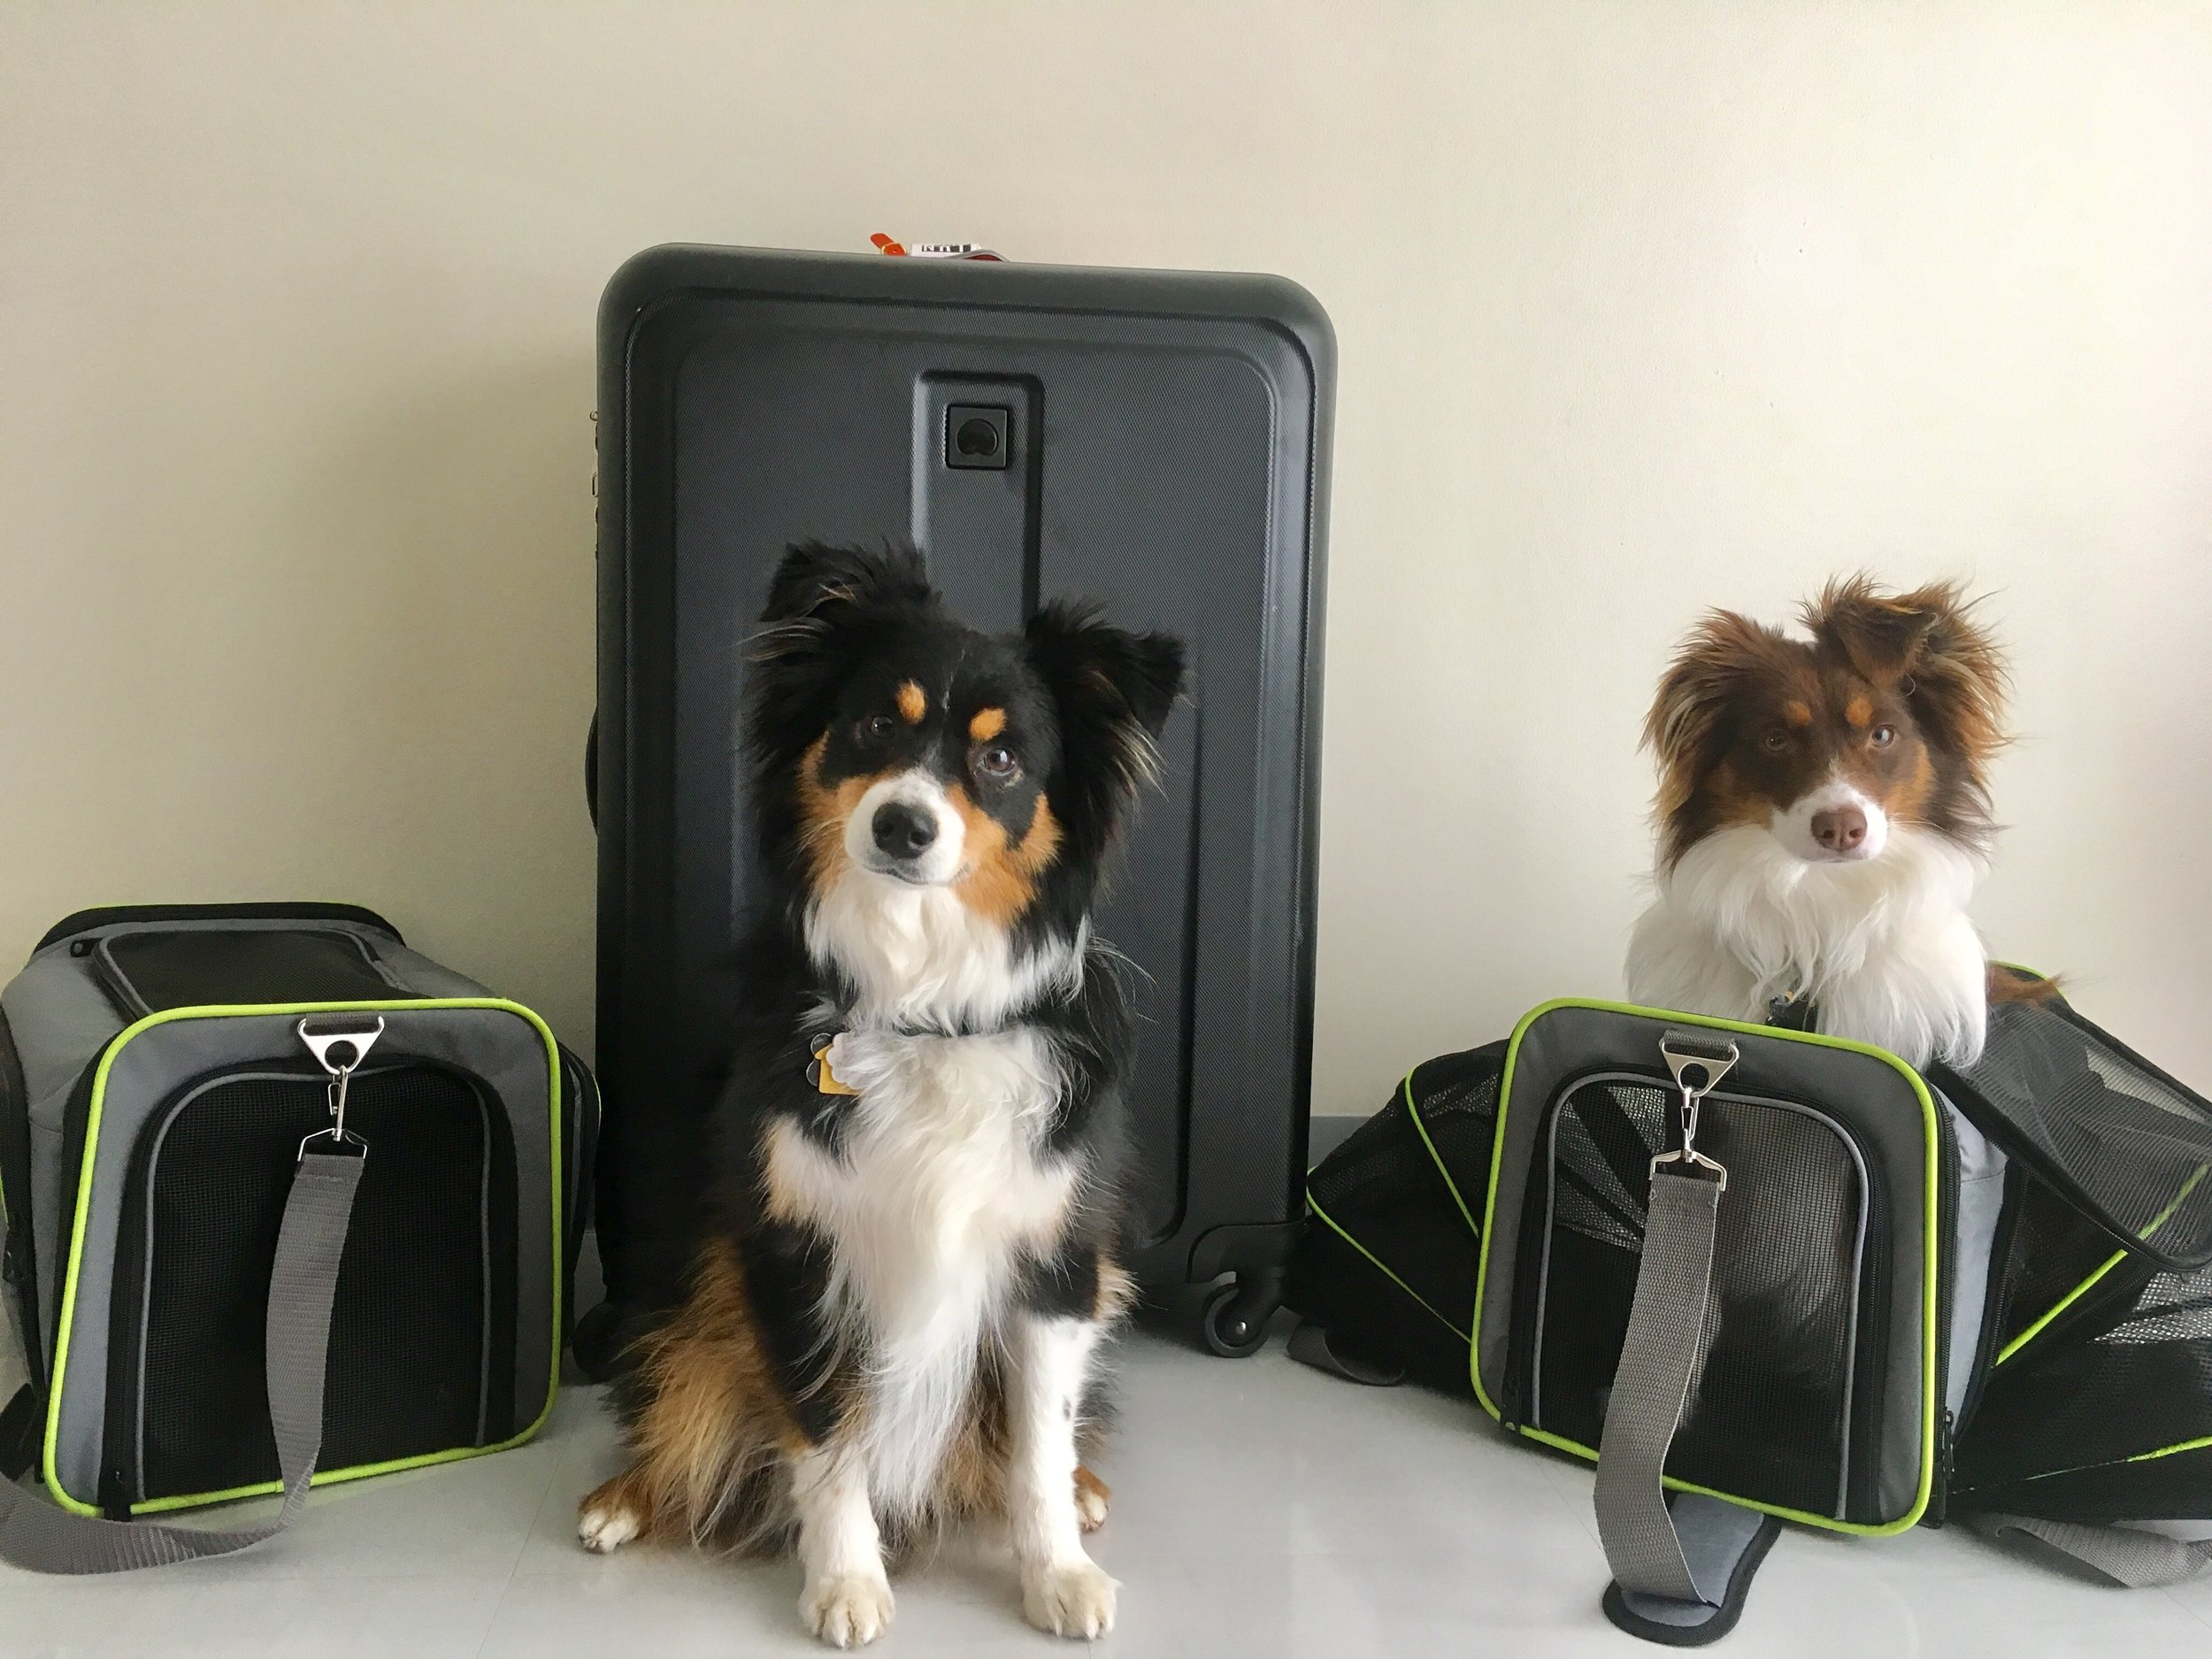 PCS-with-dogs-carry-on-carriers-schuyler-croy-5.jpg